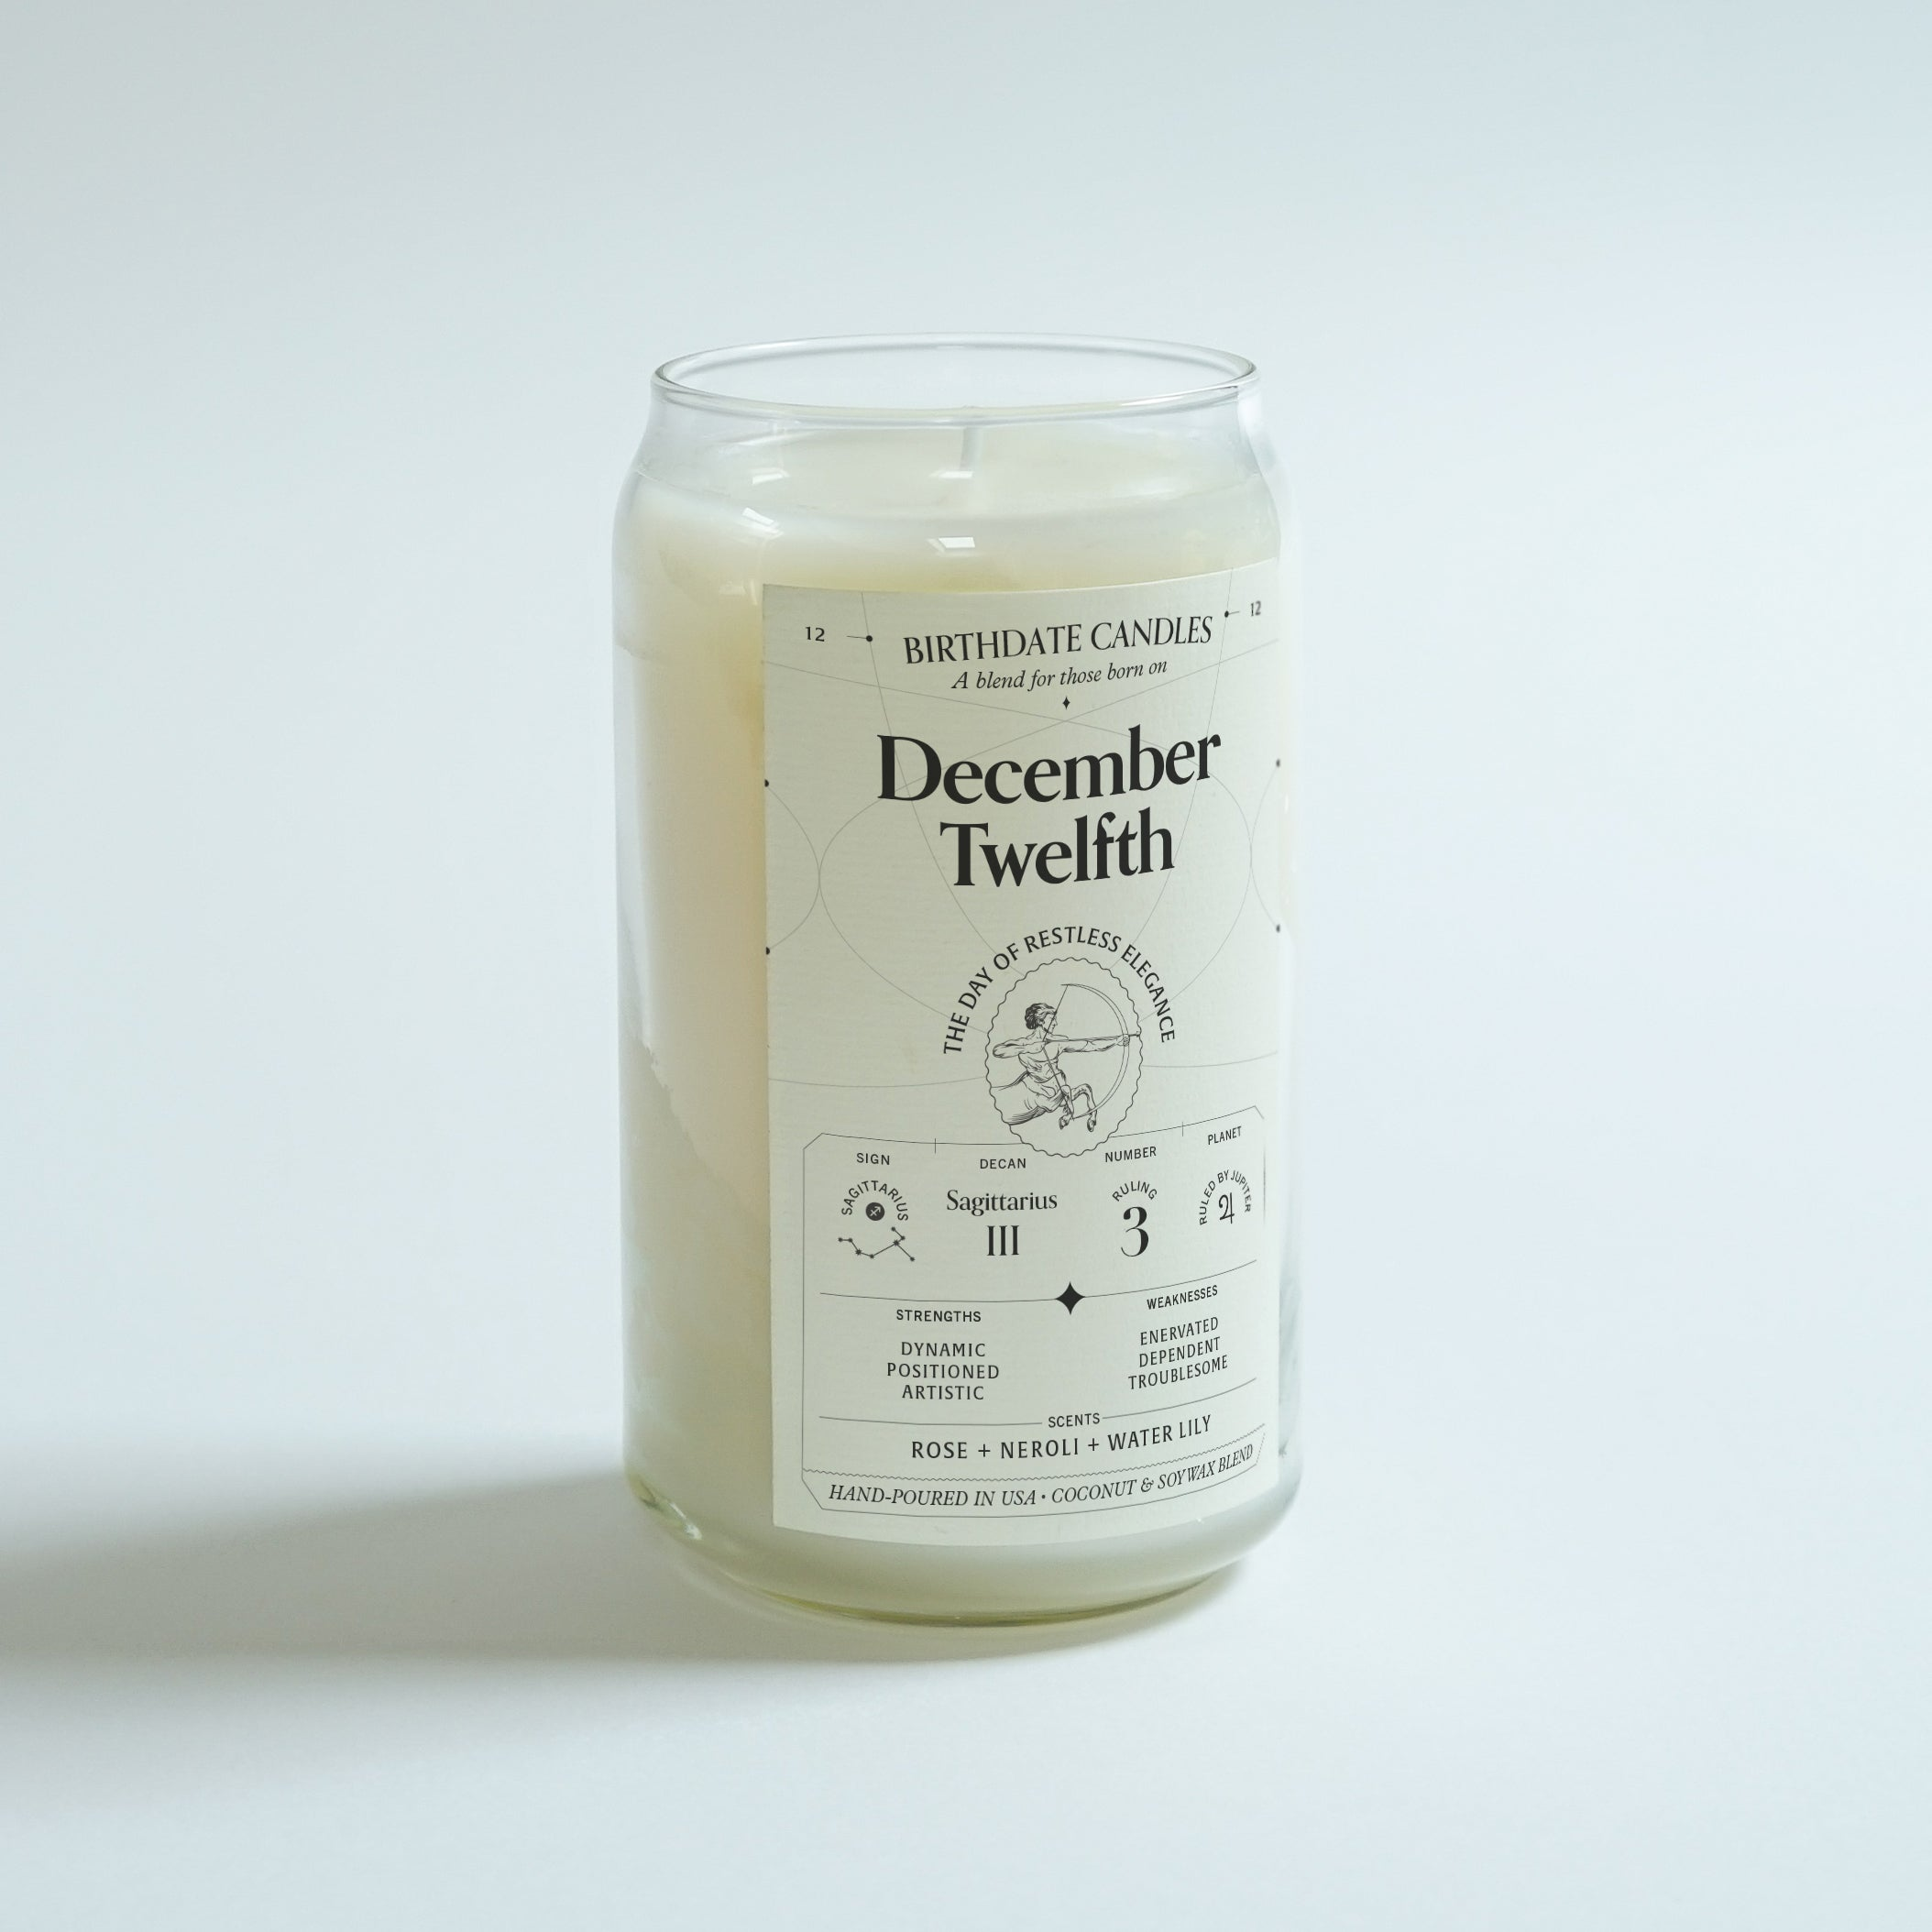 The December Twelfth Candle